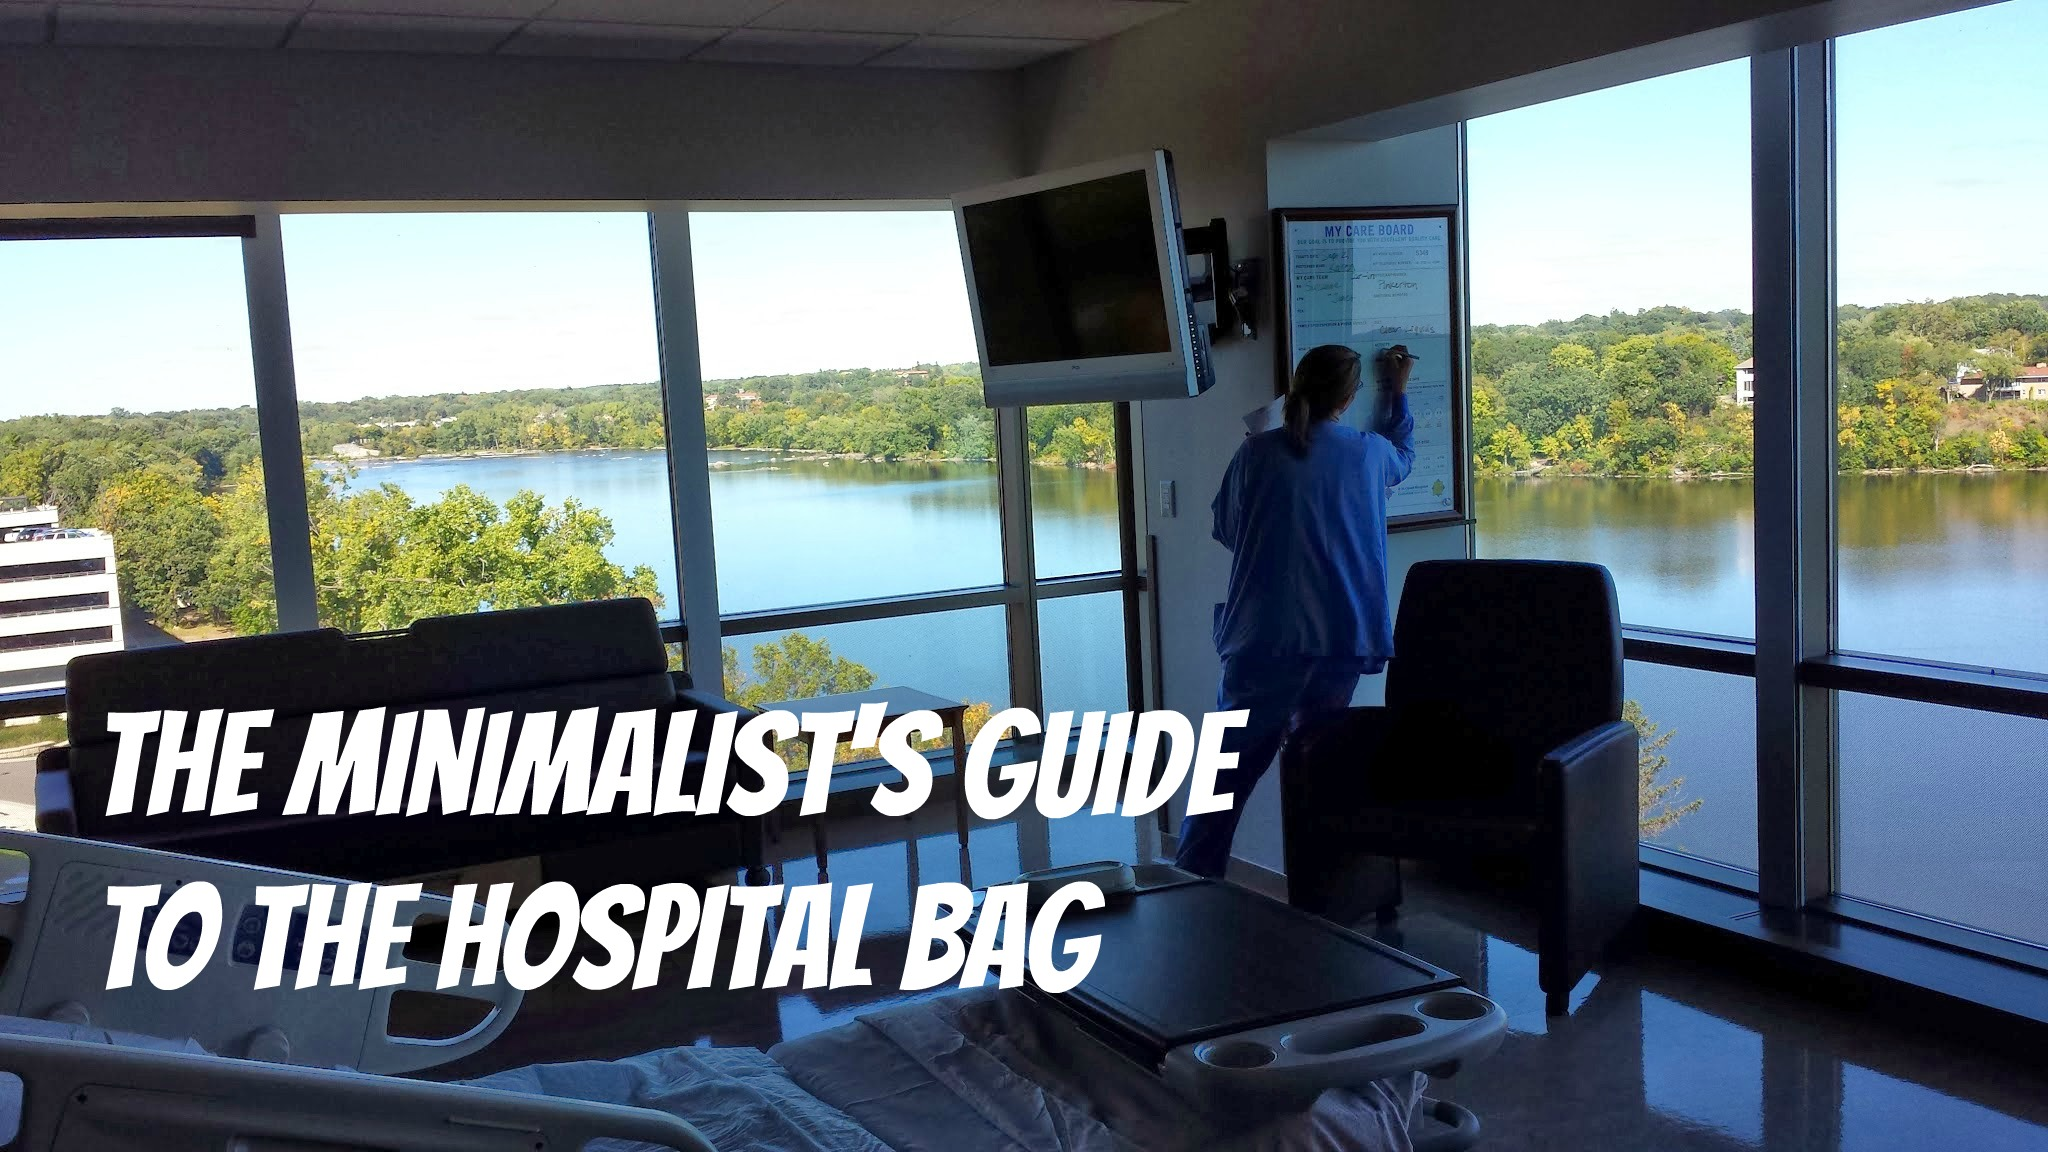 The Minimalist's Guide to the Hospital Bag